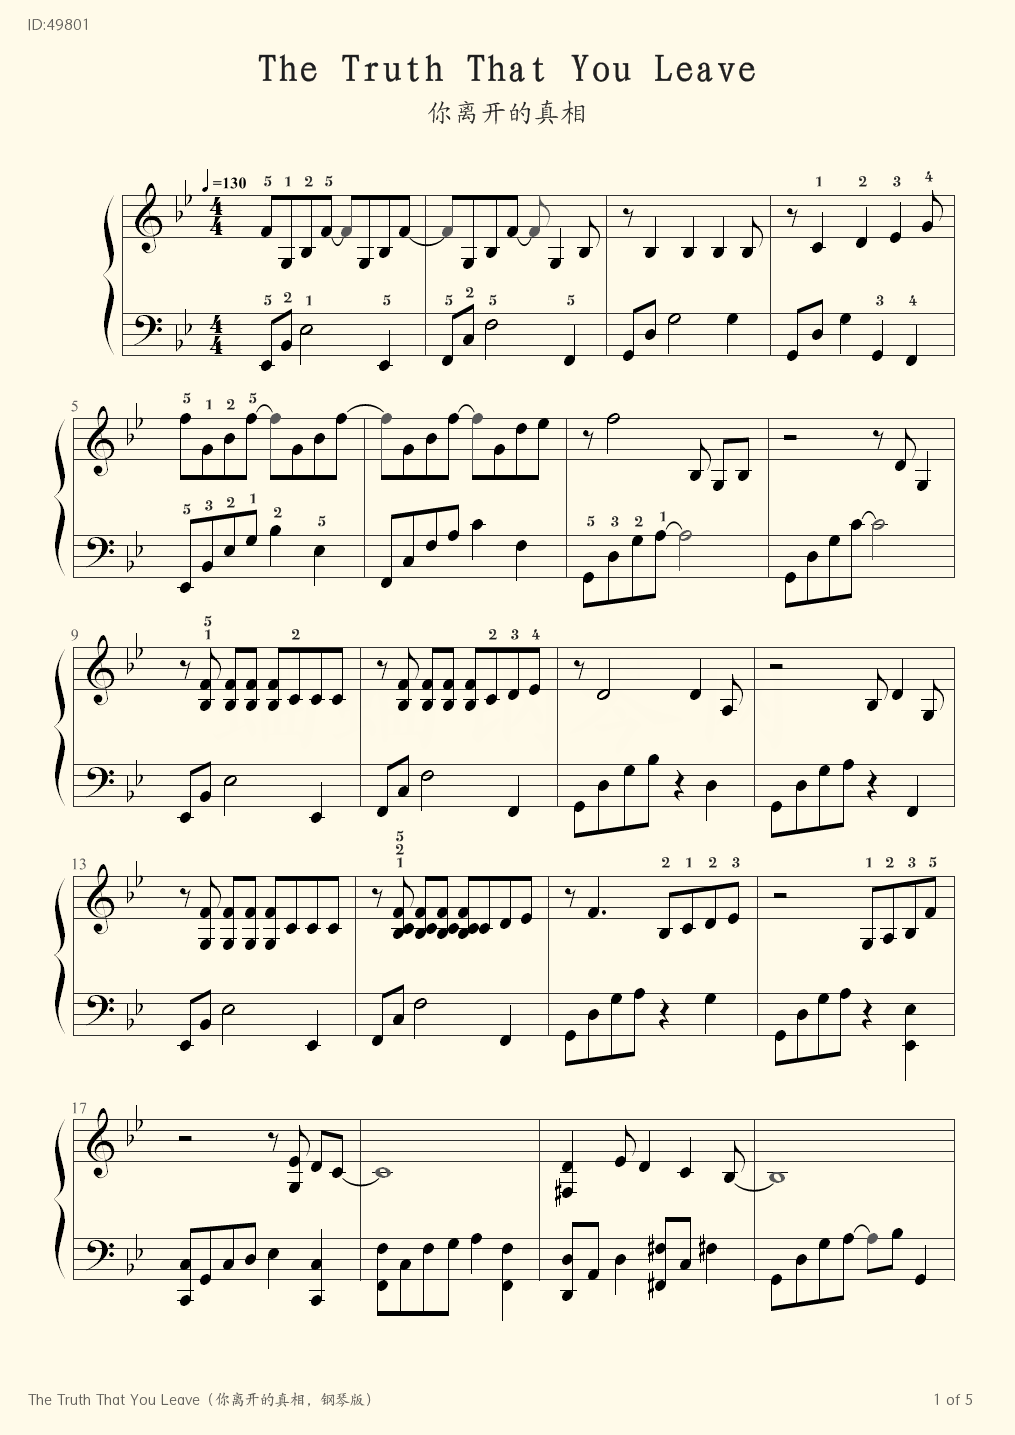 The Truth That You Leave  - Pianoboy - first page